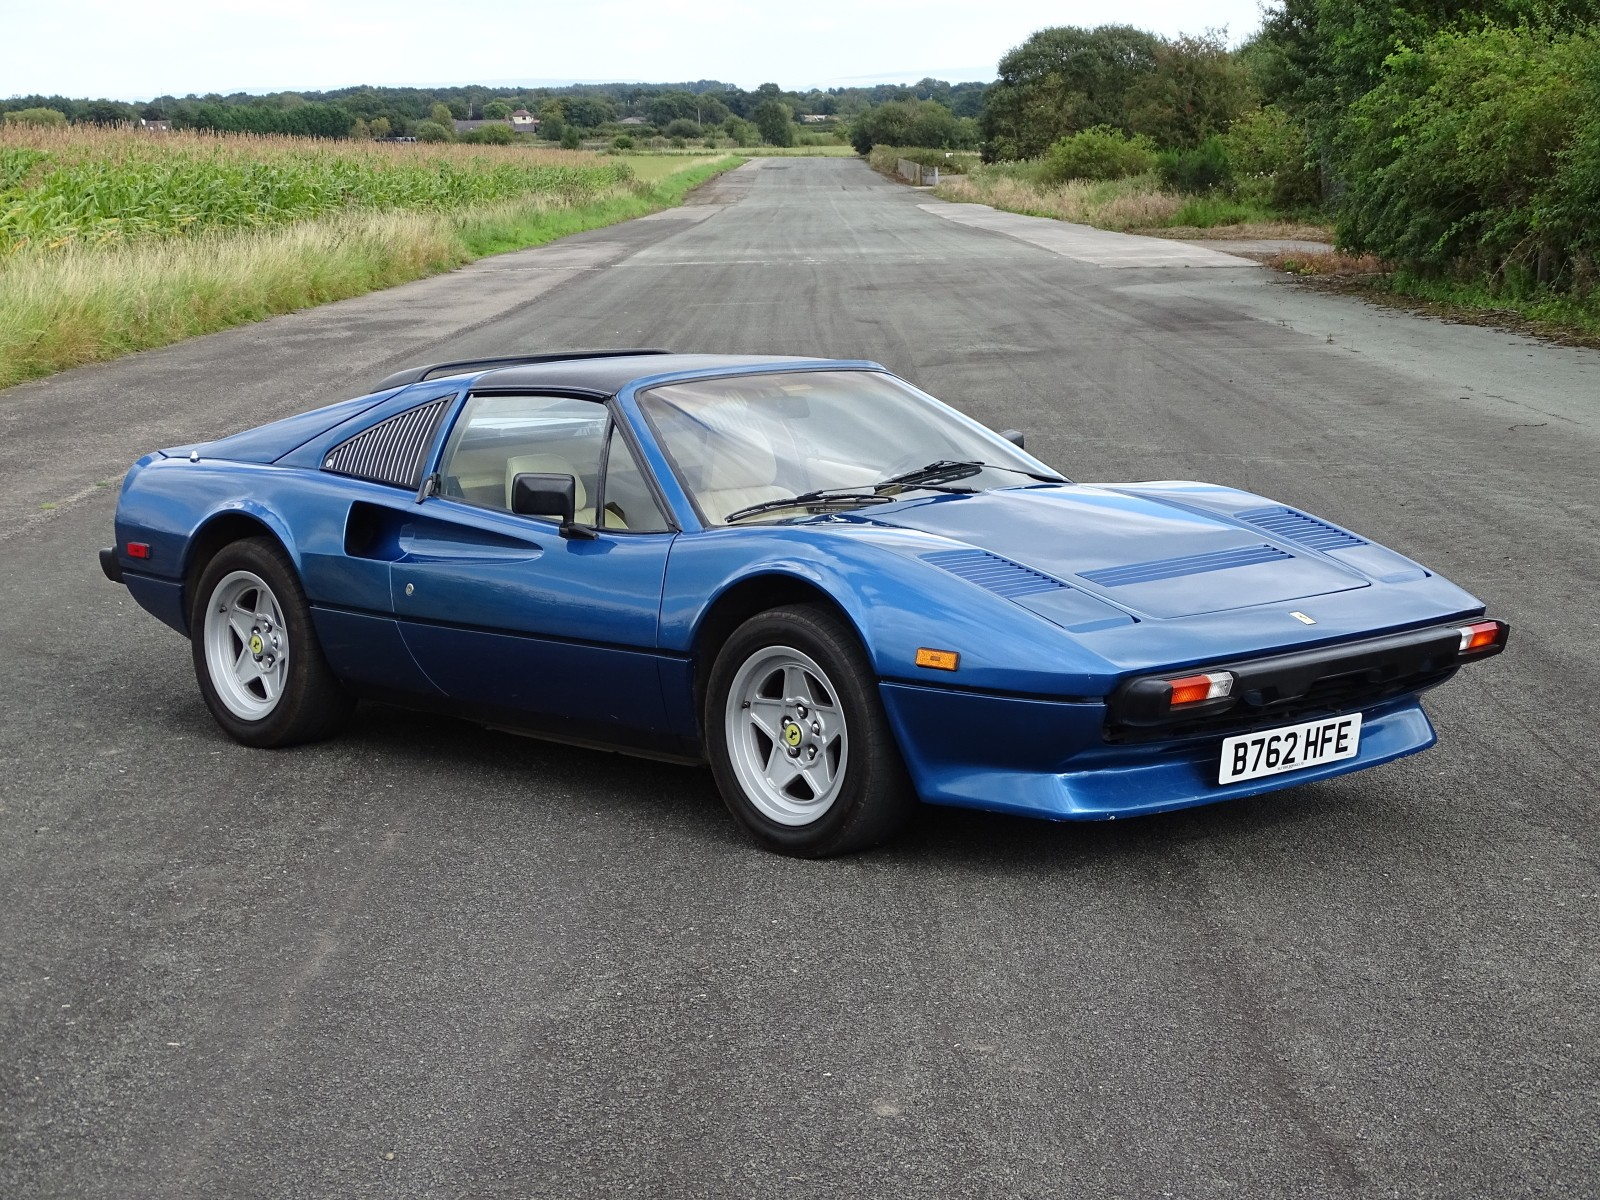 1984 Ferrari 308 Gts Qv Owned By Iggy Pop Up For Grabs Namastecar